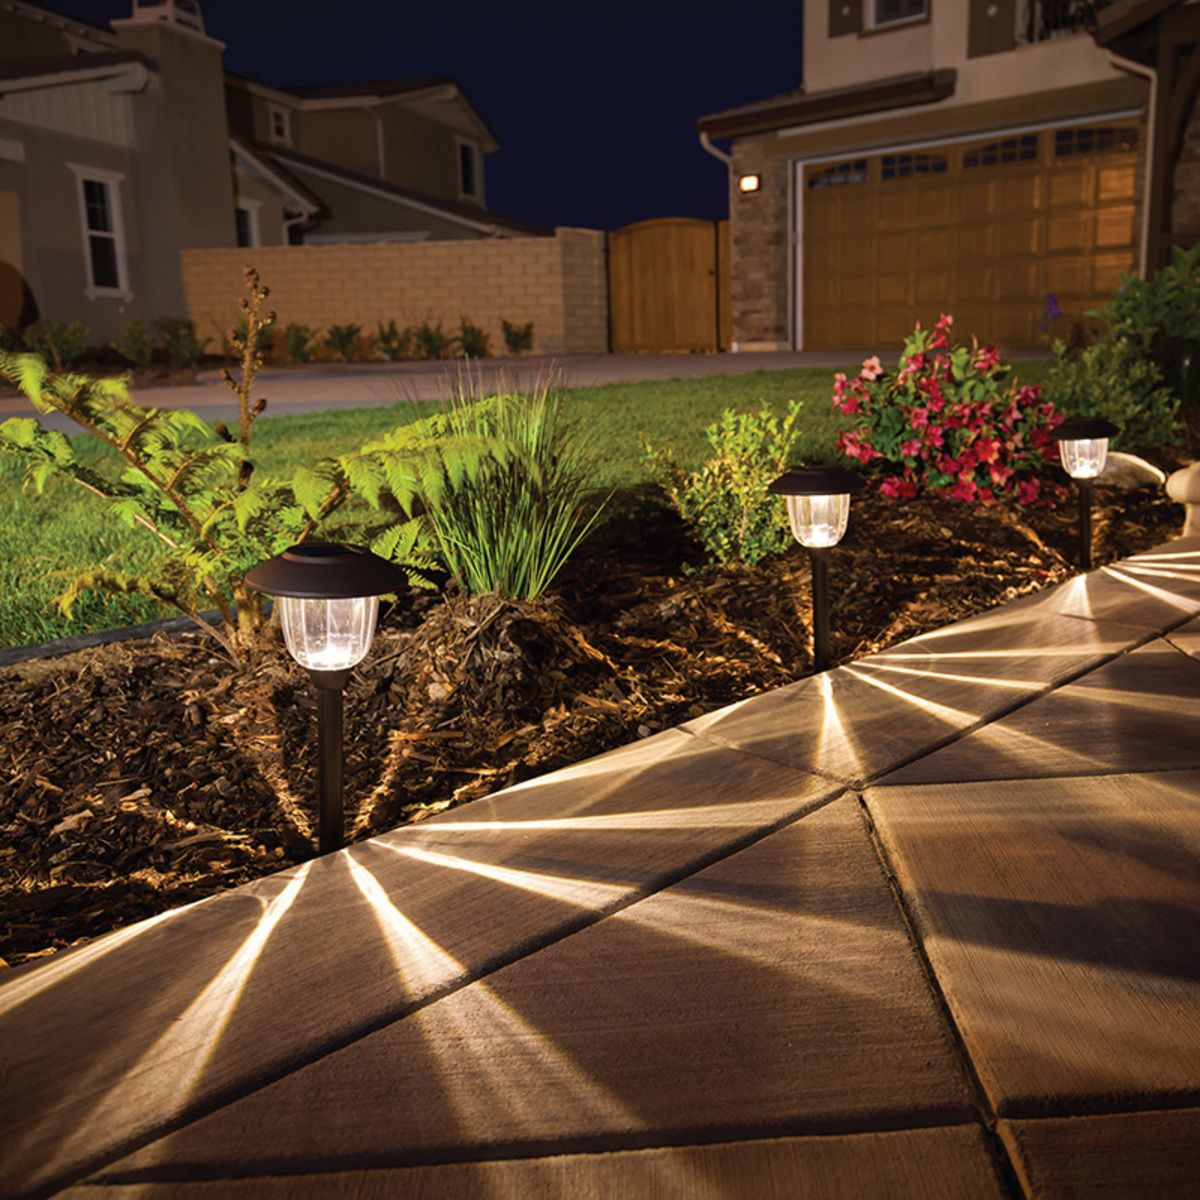 Smart yard luminarios solares para exterior led costco - Led para jardin ...